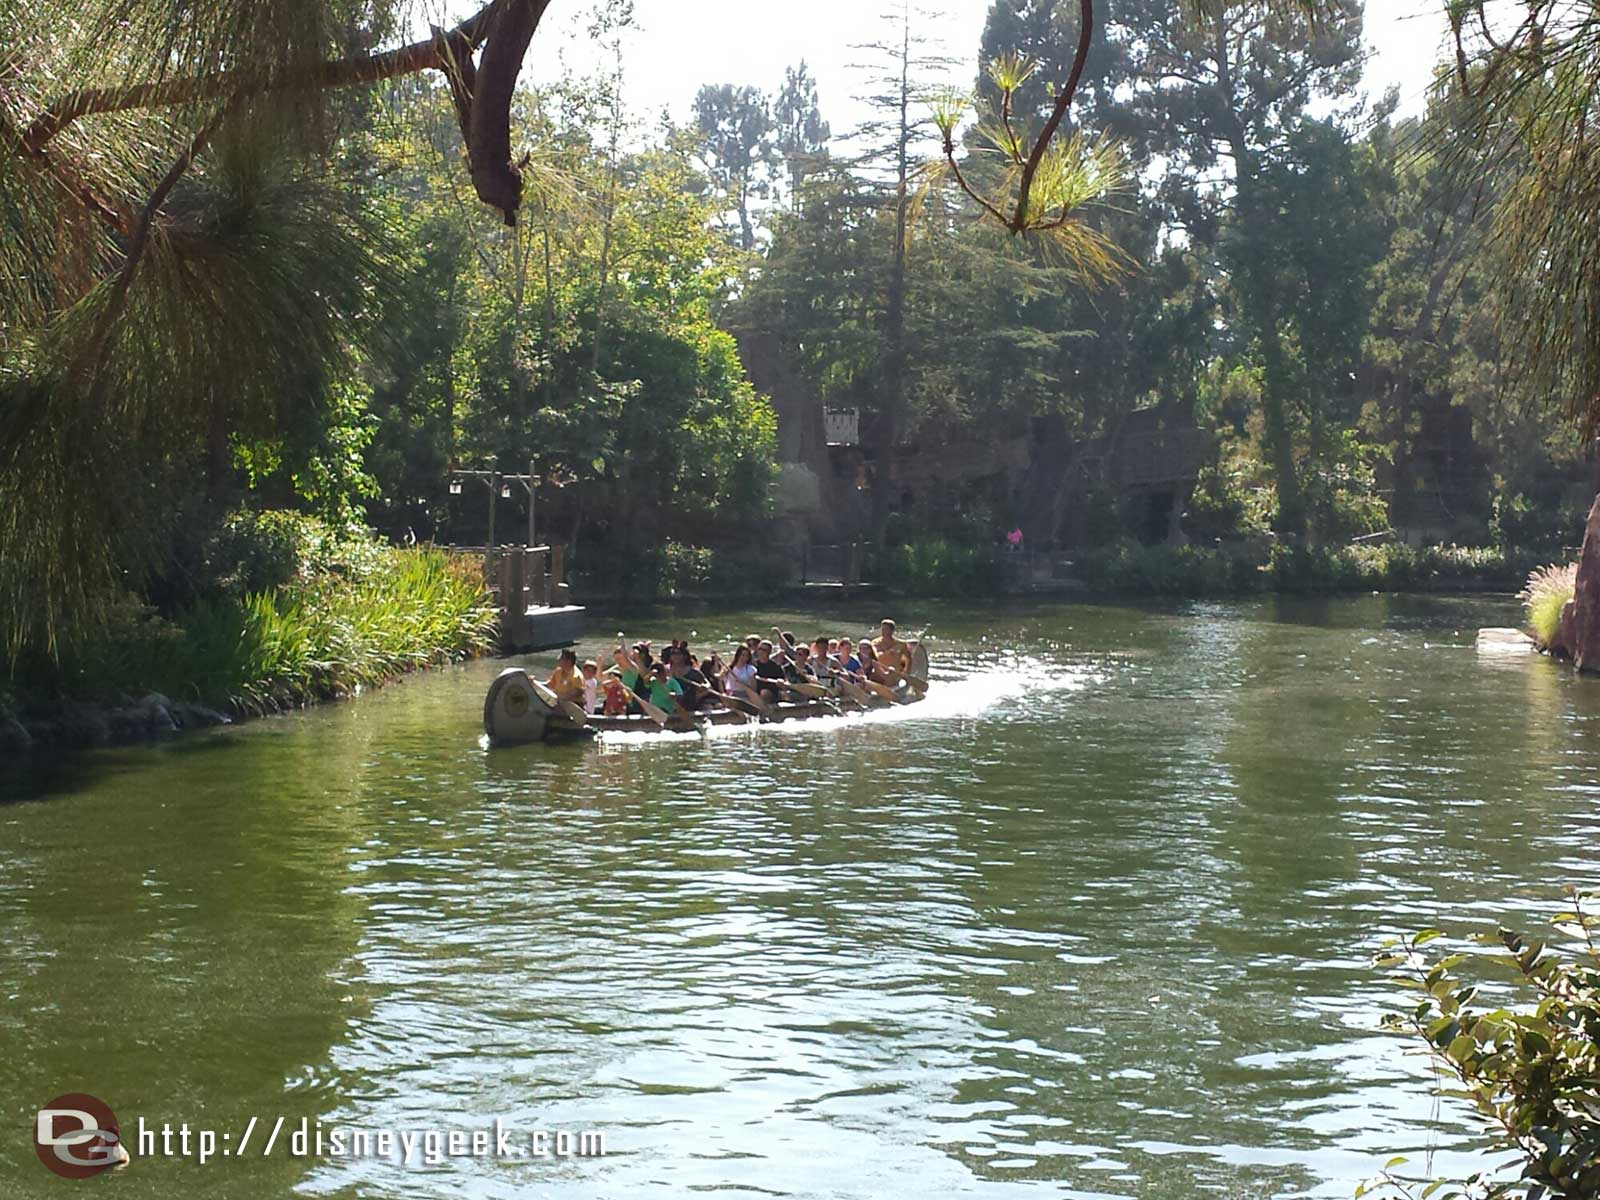 A canoe passing by on the Rivers of America